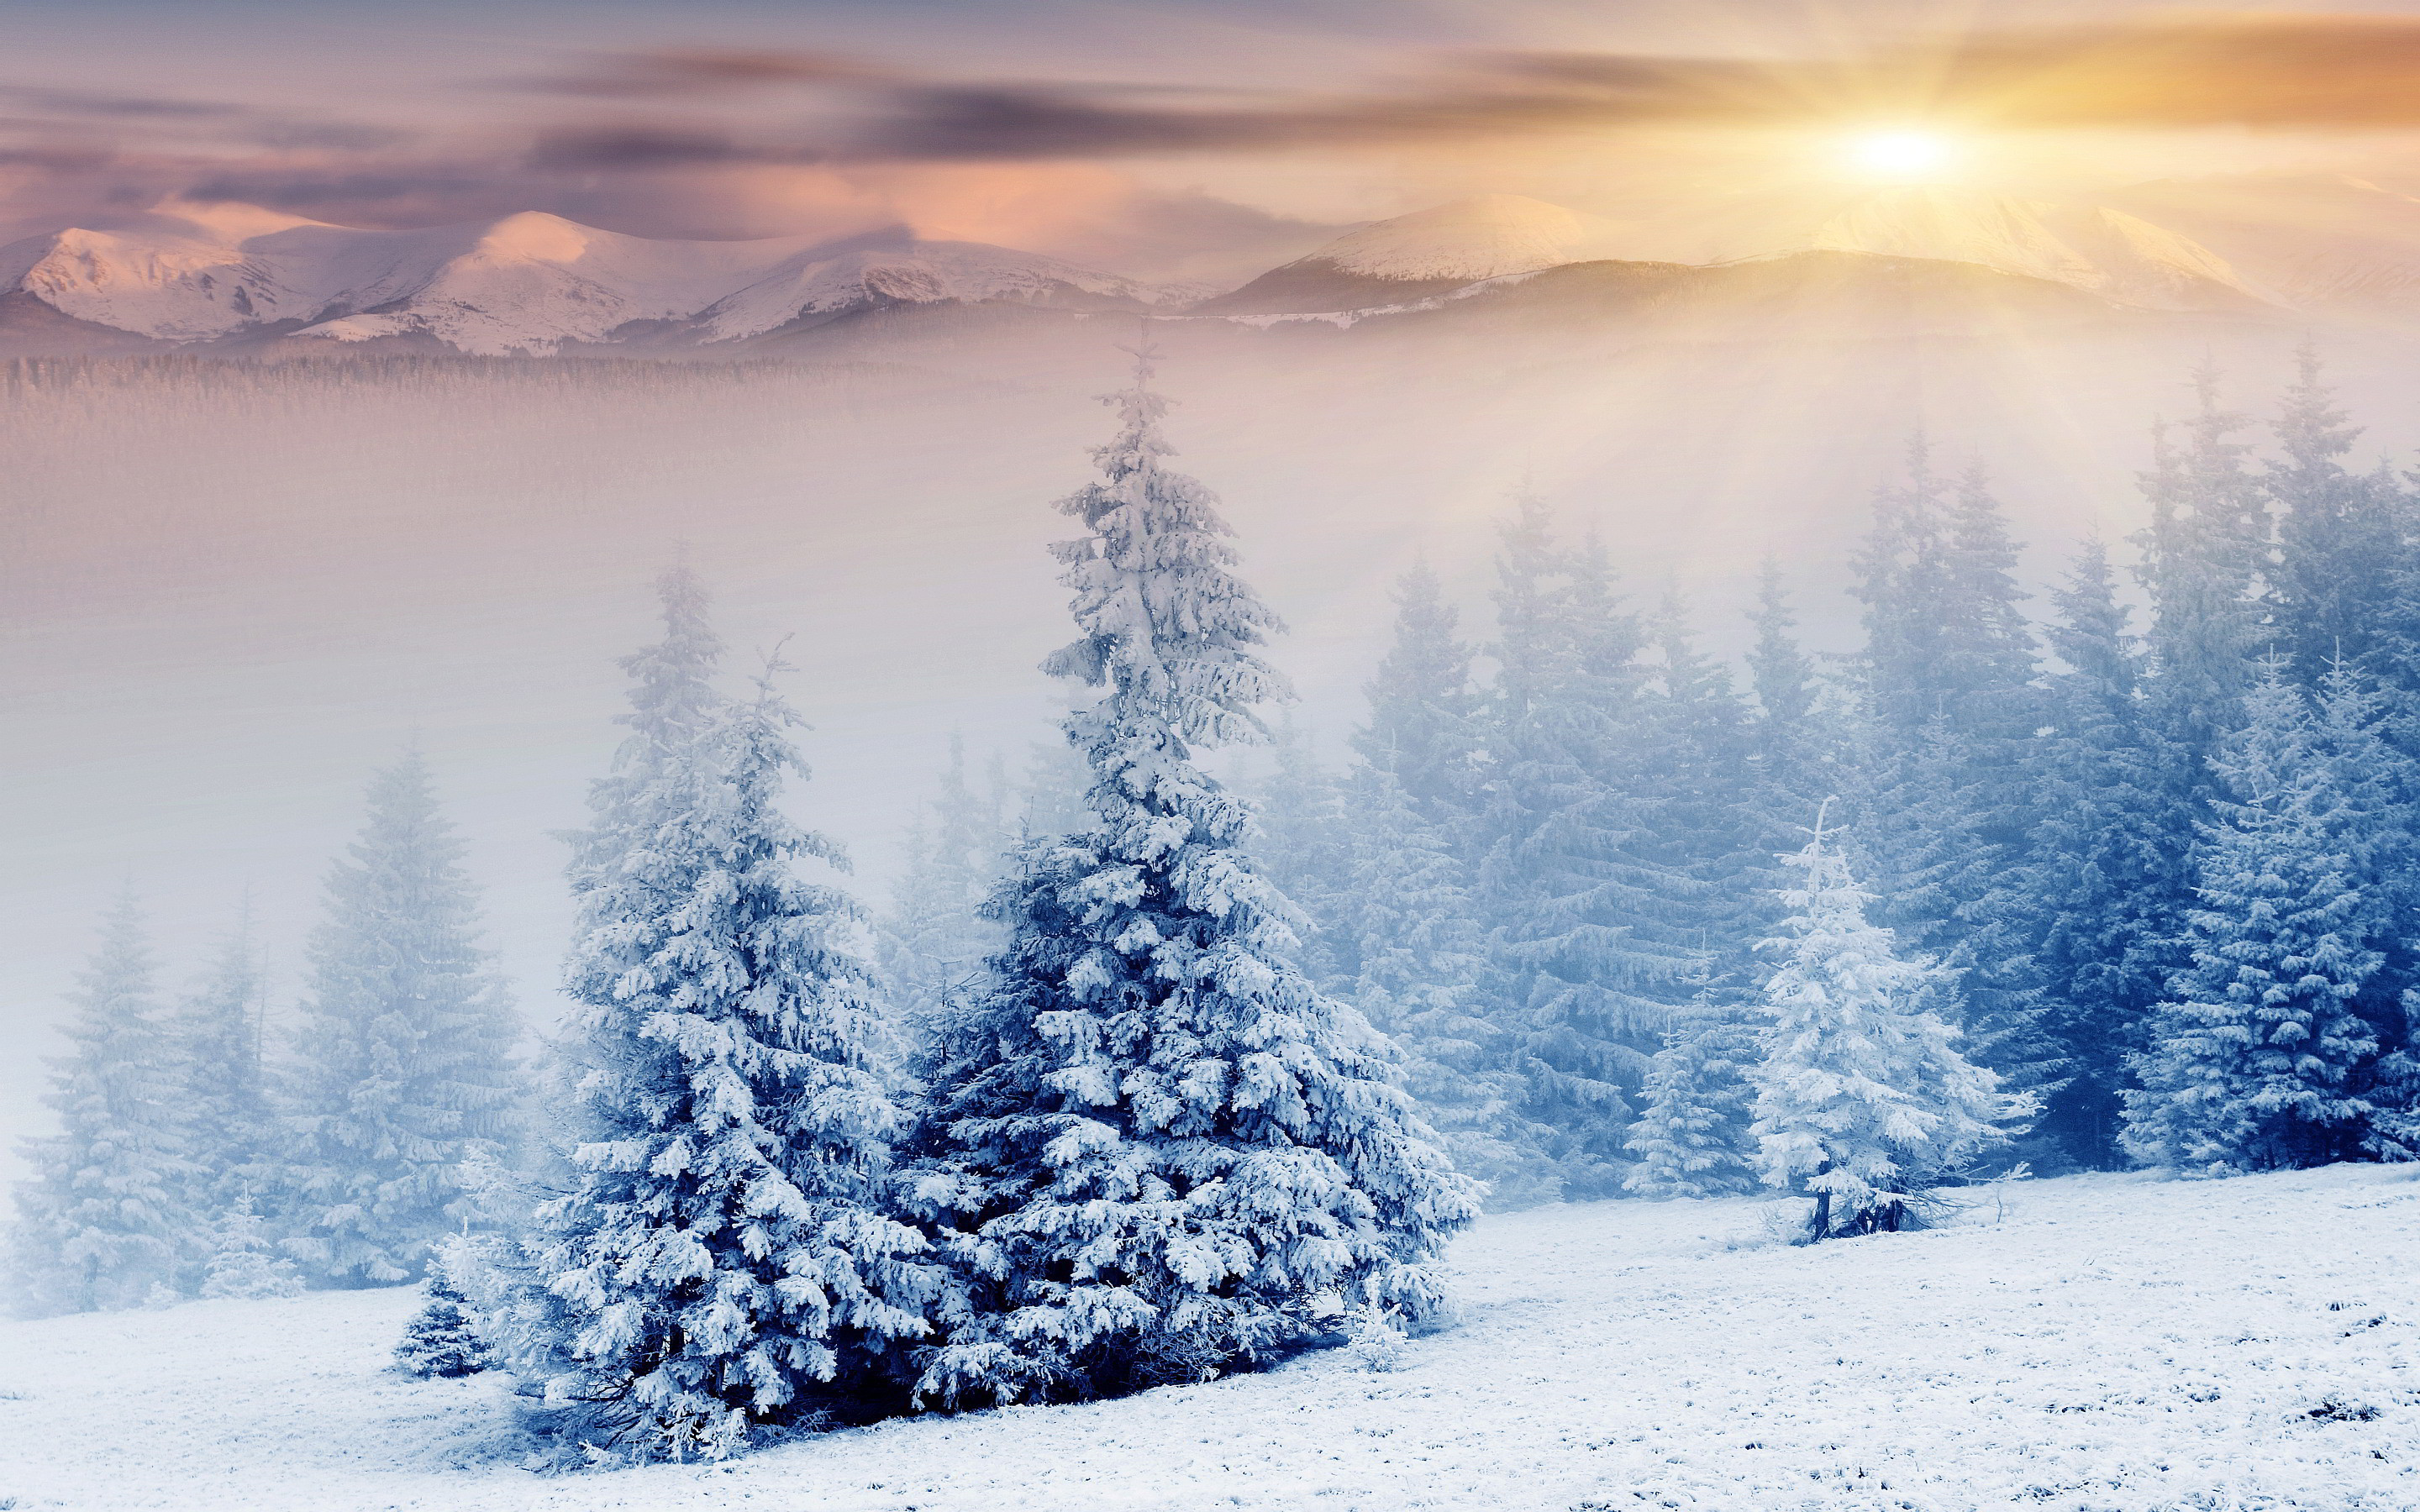 2880x1800  File Name: #749900 Beautiful Winter Snow-wallpaper-30.jpg